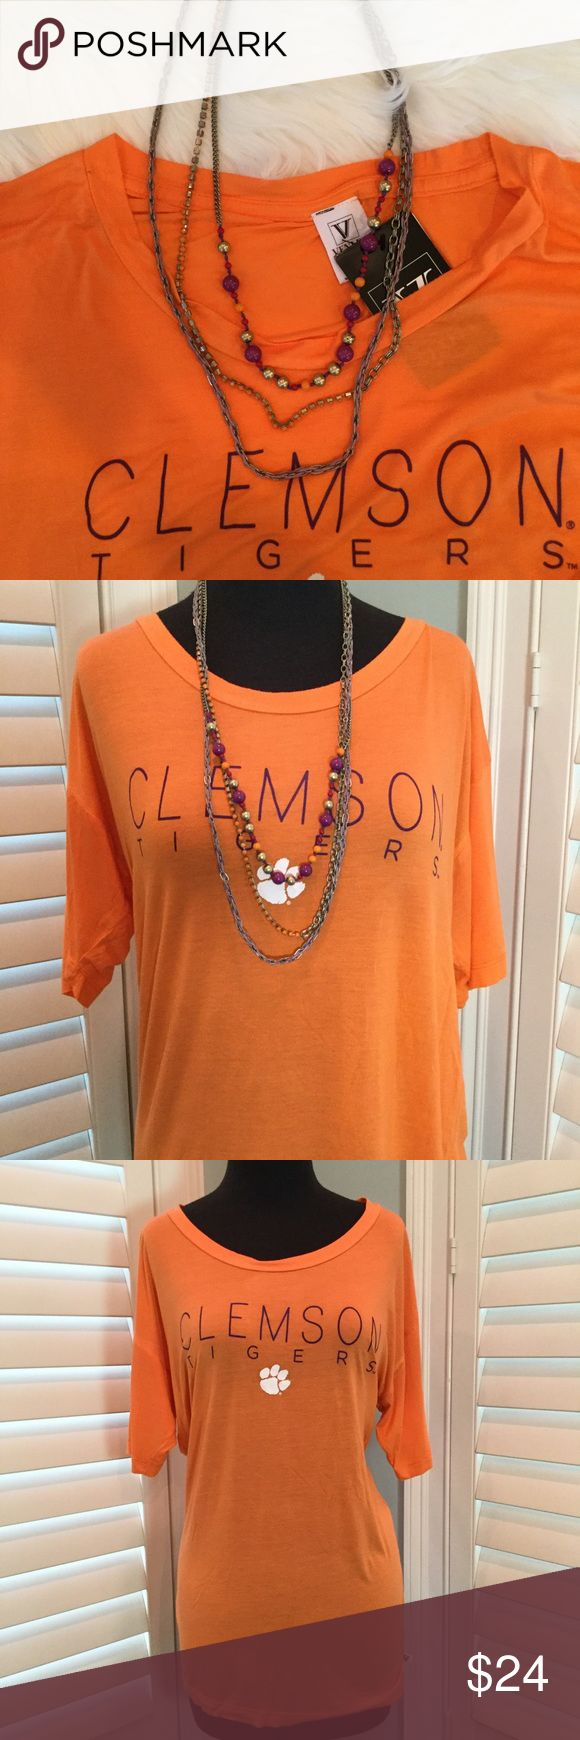 """Clemson Bundle: NWT T-shirt and Necklace, L/XL Clemson bundle of NWT women's t-shirt and preowned silver tone, orange and purple three strand necklace. Necklace is Jessica Simpson.  🔹Necklace measures 30"""" long 🔹Shirt is 92% rayon, 8% spandex  🔹Measurements laying flat: armpit to armpit 20"""", length 27"""". 🔹Condition: Shirt is new with tags attached. Necklace is in great preowned condition.  (Sandy) Tops Tees - Short Sleeve"""